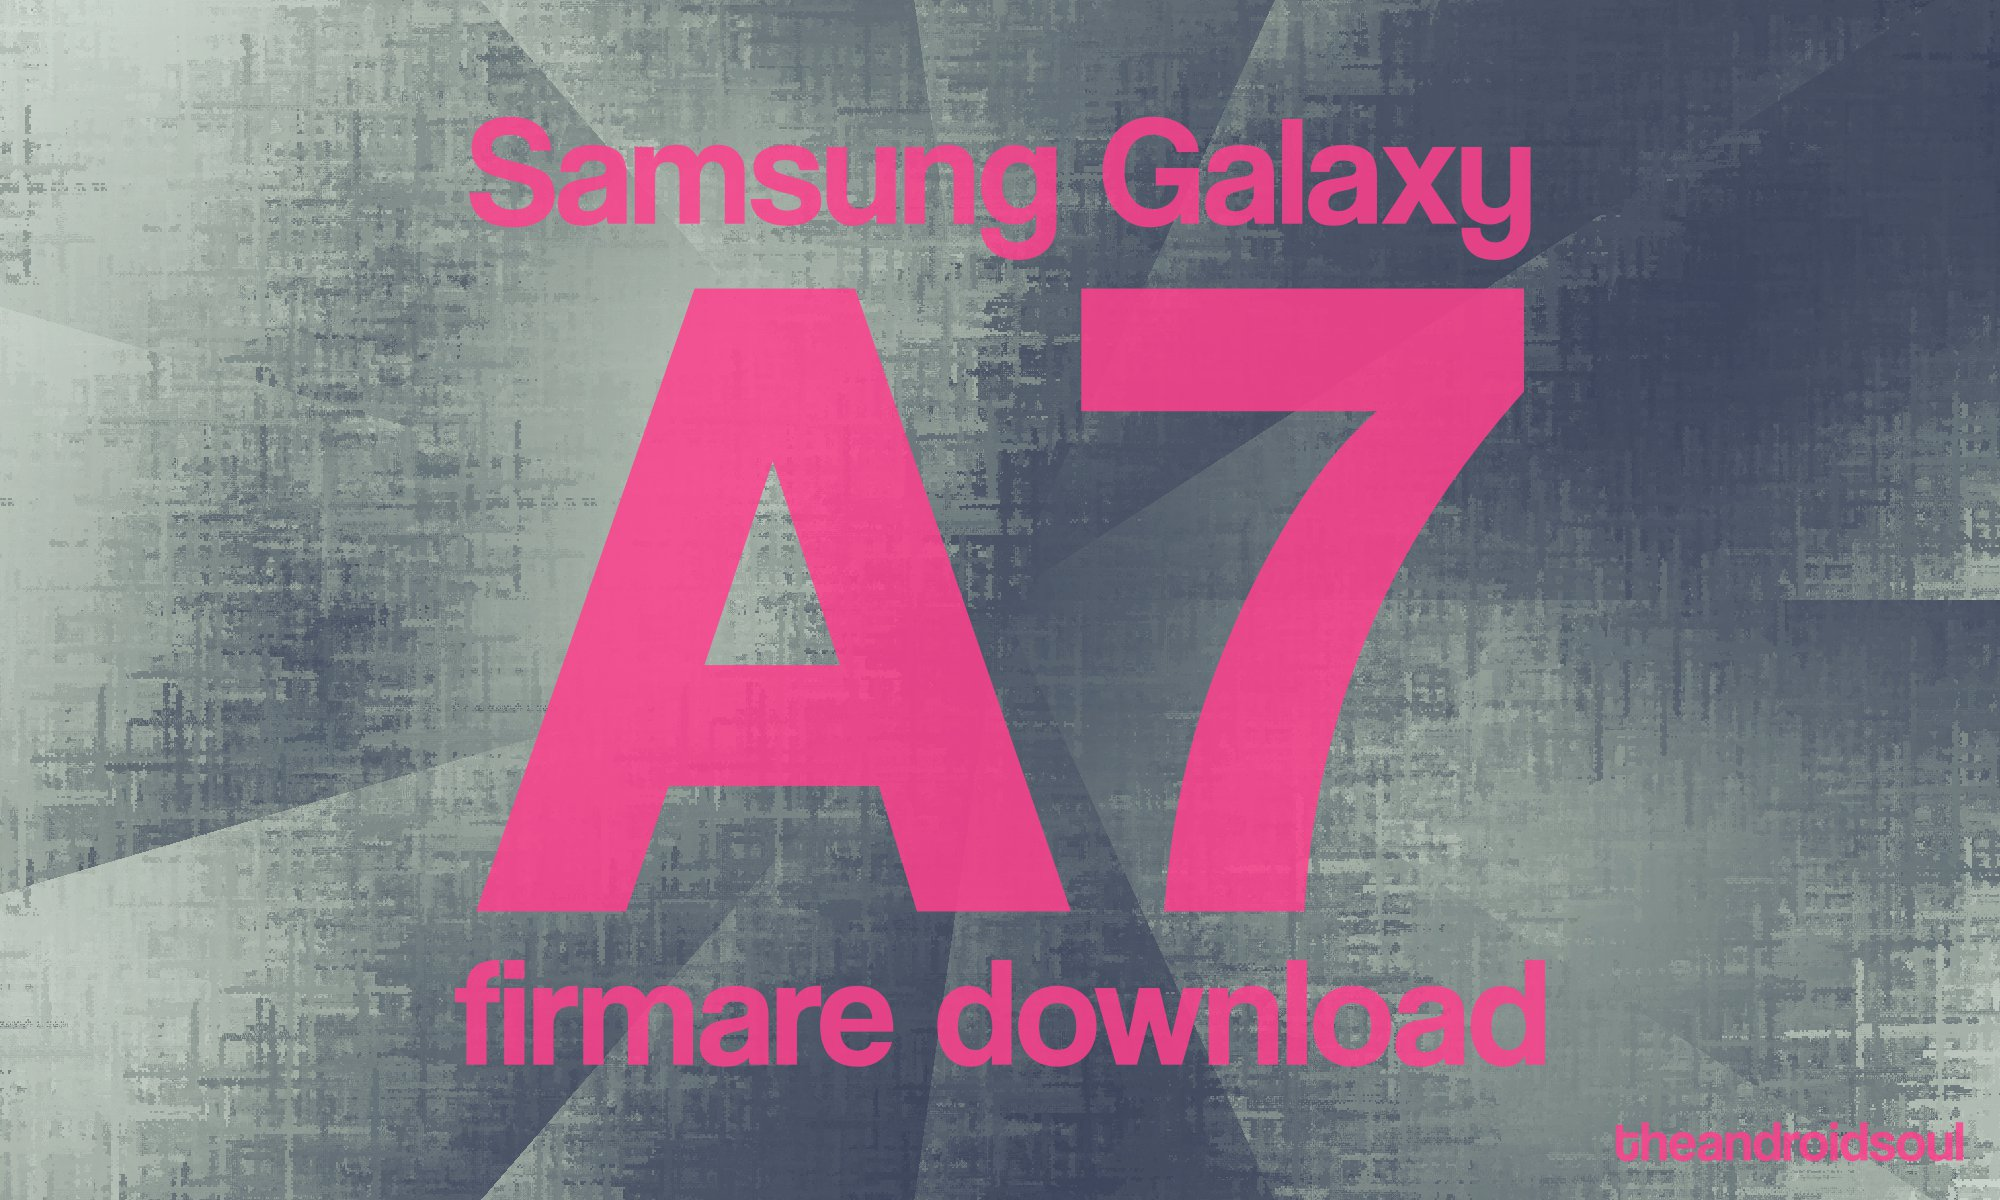 Galaxy A7 firmware download: Android 9 Pie available for